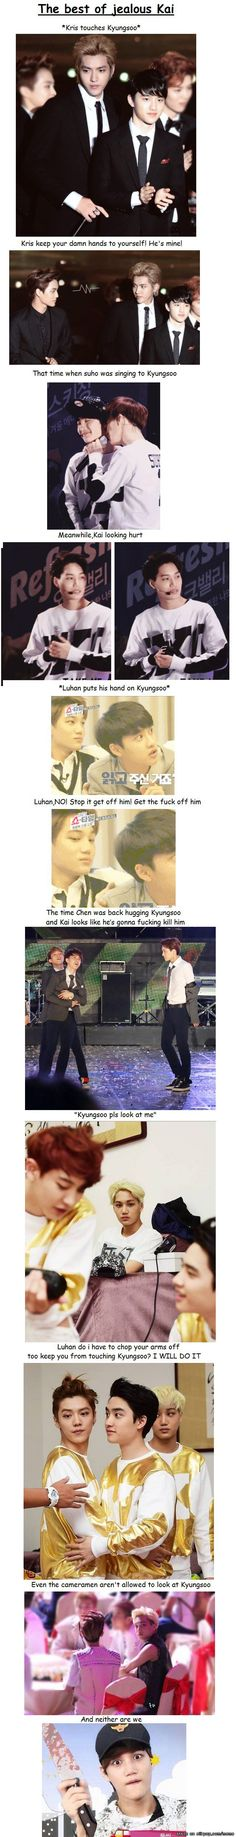 The best of jealous Kai x3 | allkpop Meme Center